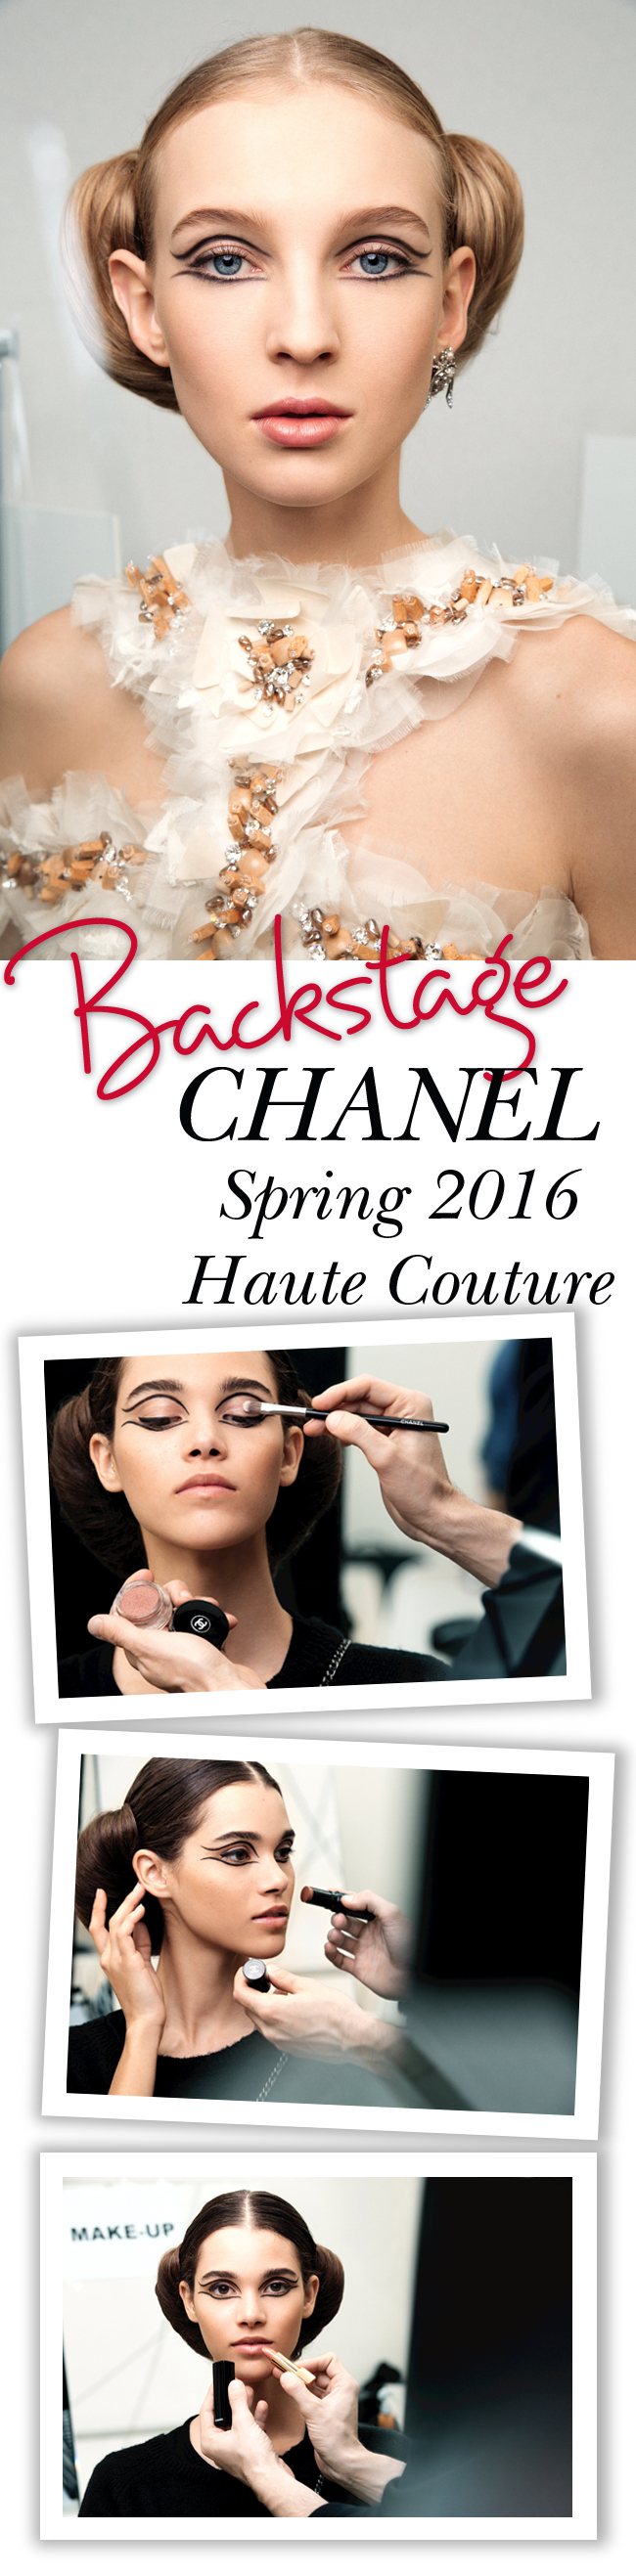 Backstage at Chanel Fashion Show, Chanel Spring 2016 Haute Couture, Chanel Haute Couture, Chanel Beauty, Chanel Makeup